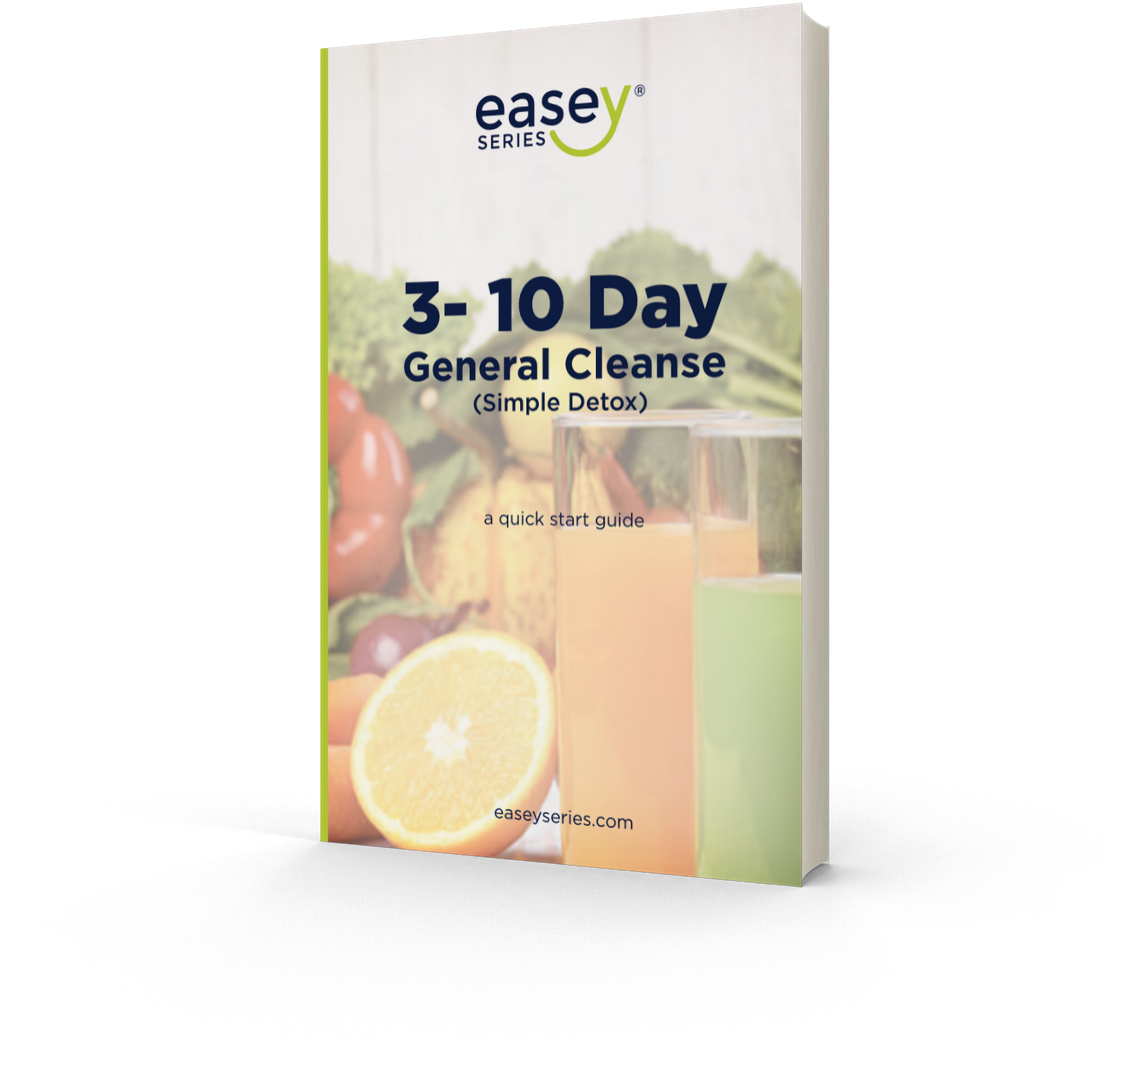 Easey Series 3 - 10 Day Cleanse General Guide eBook